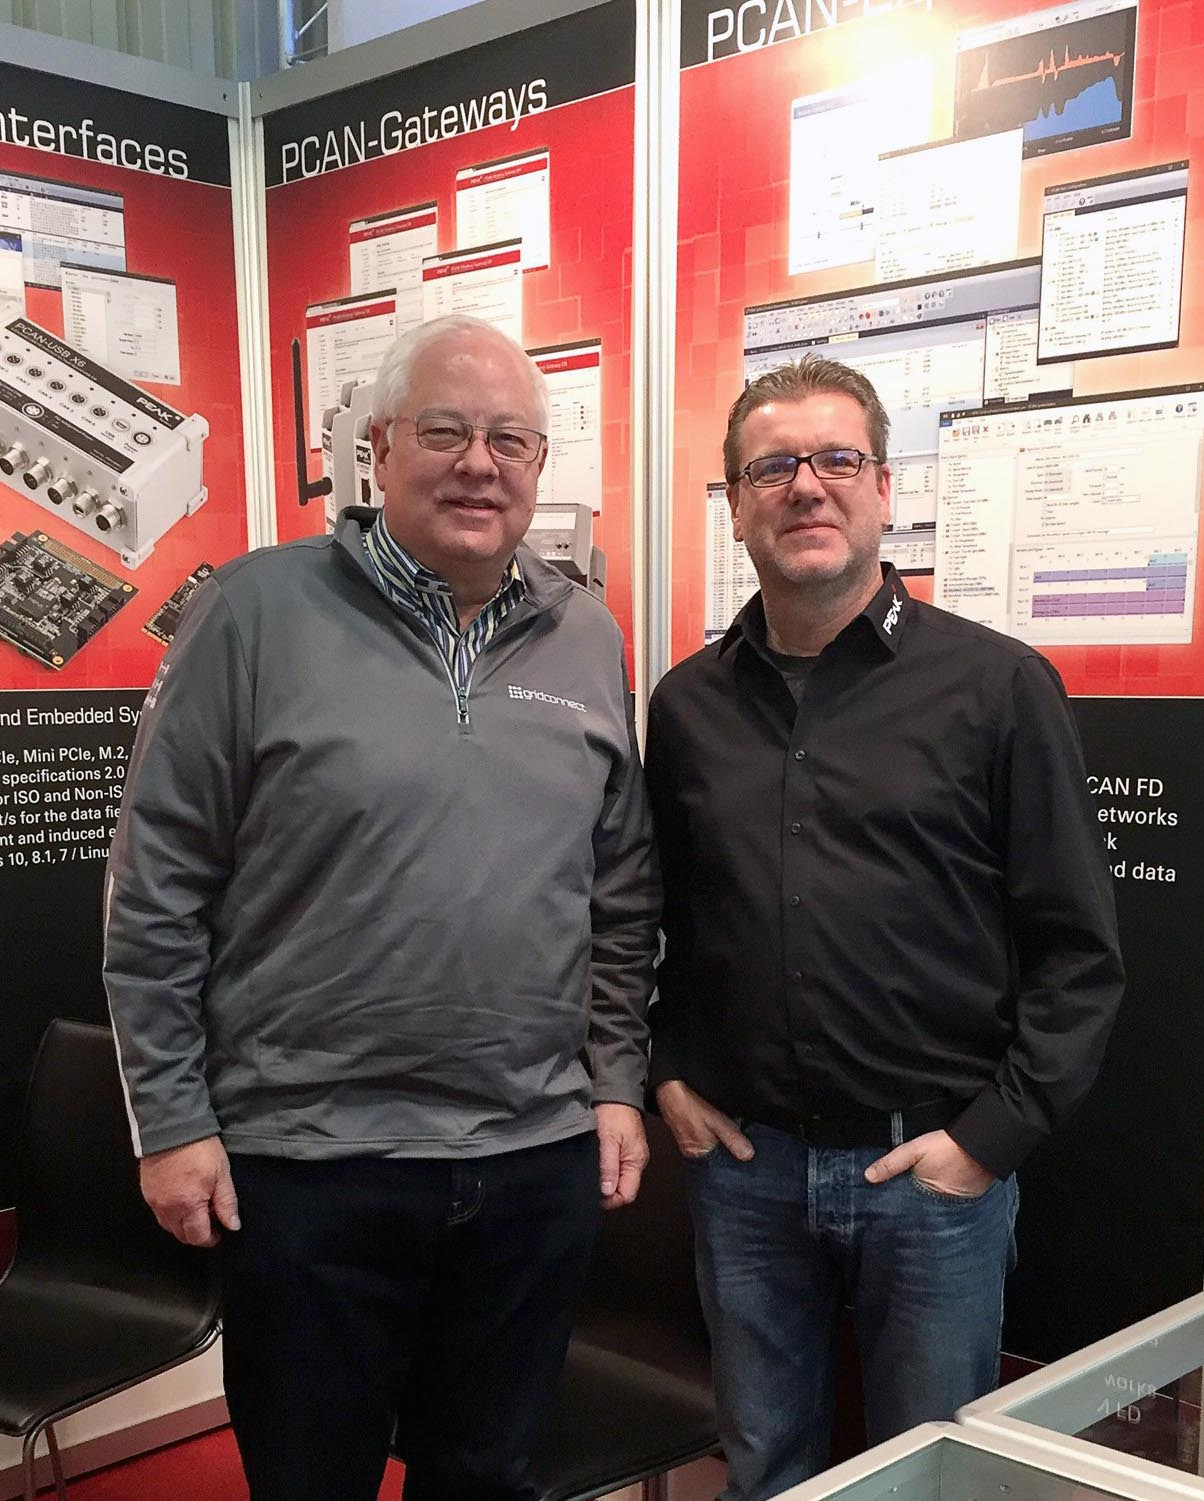 Grid Connect Founder Mike Justice and PEAK Founder Uwe Wilhelm